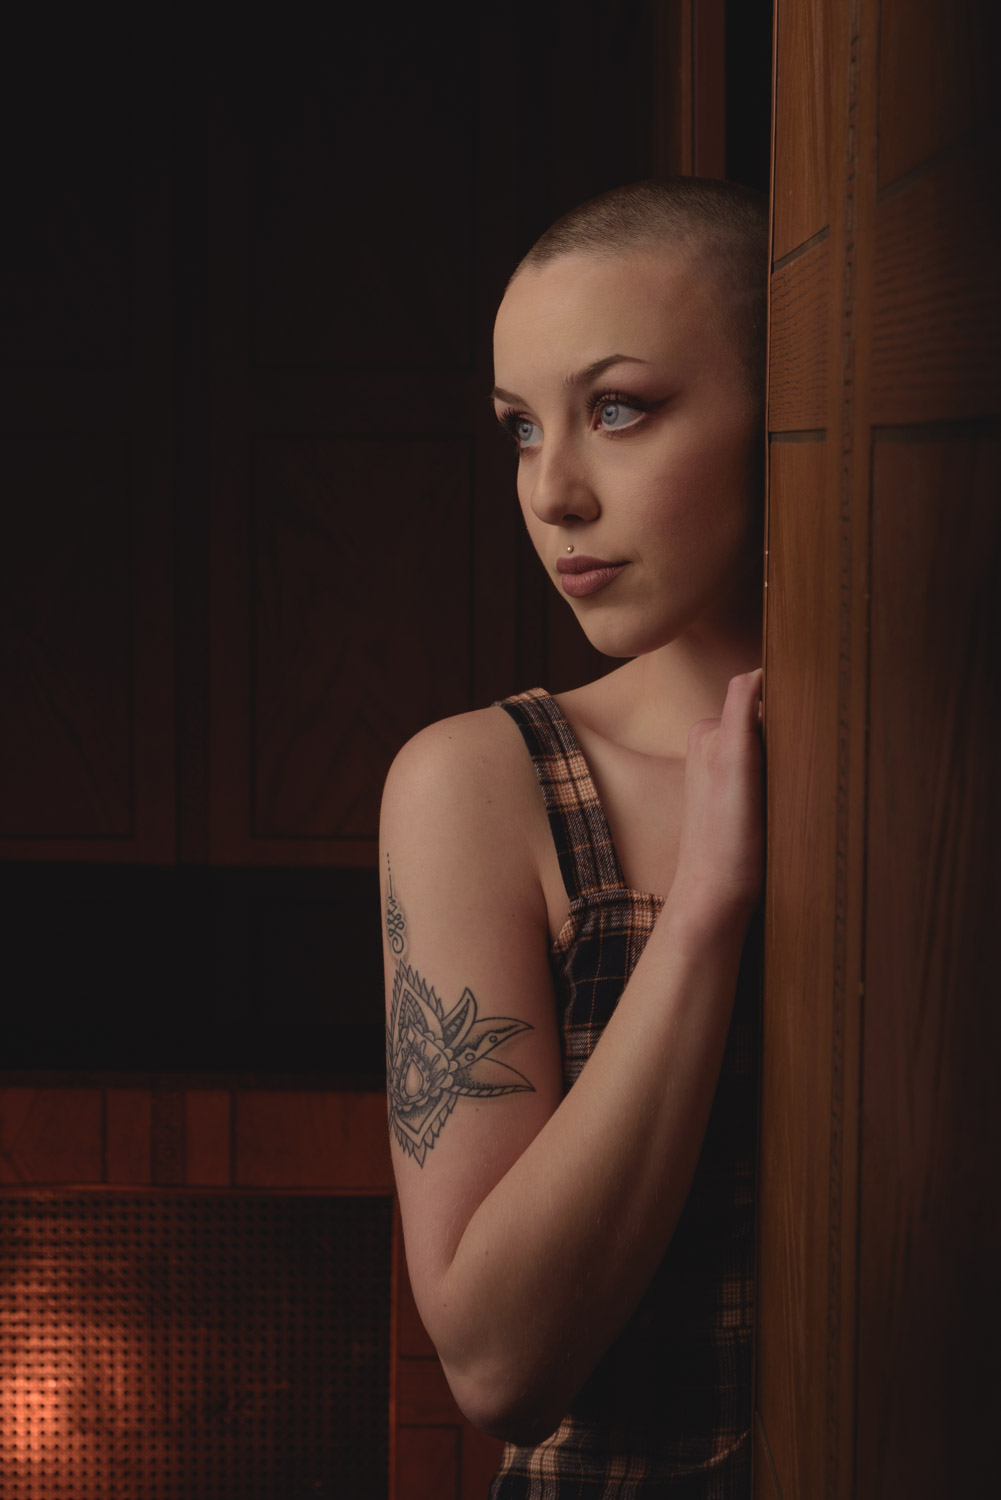 portrait of Marybeth in a dark  wood paneled room peaking around a door frame and lit with a single strobe from just out of frame in front of her.